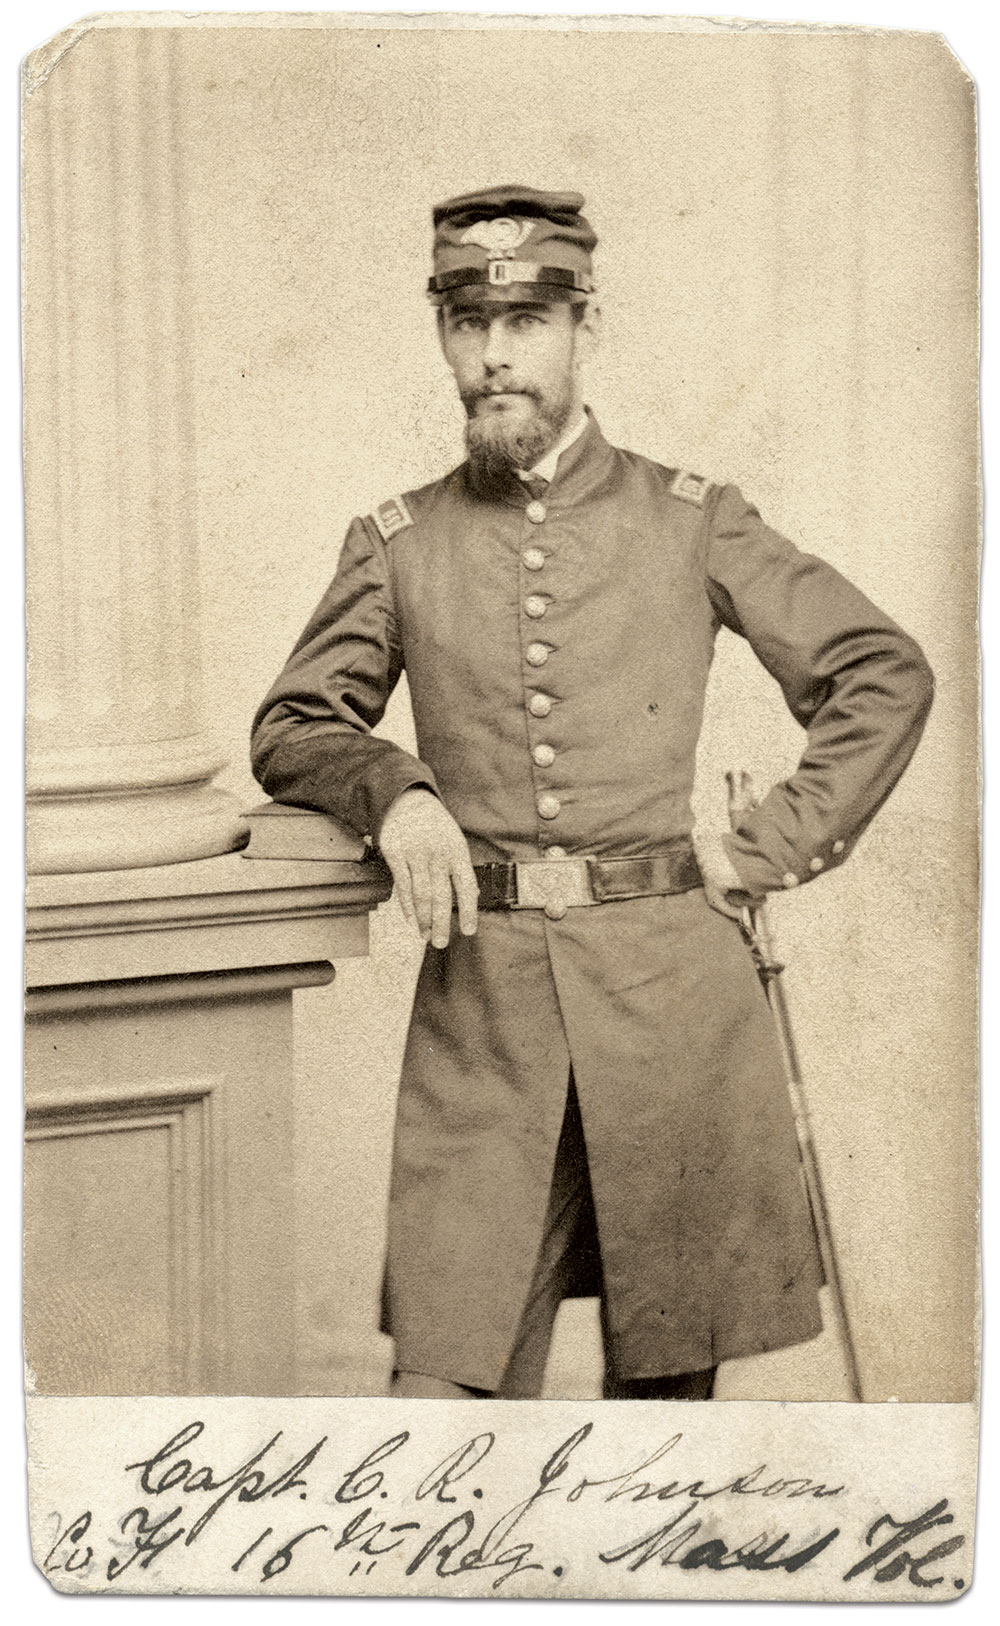 Carte de visite by Whipple of Boston, Mass. The Medford Historical Society Photograph Collection, the Medford Historical Society & Museum.